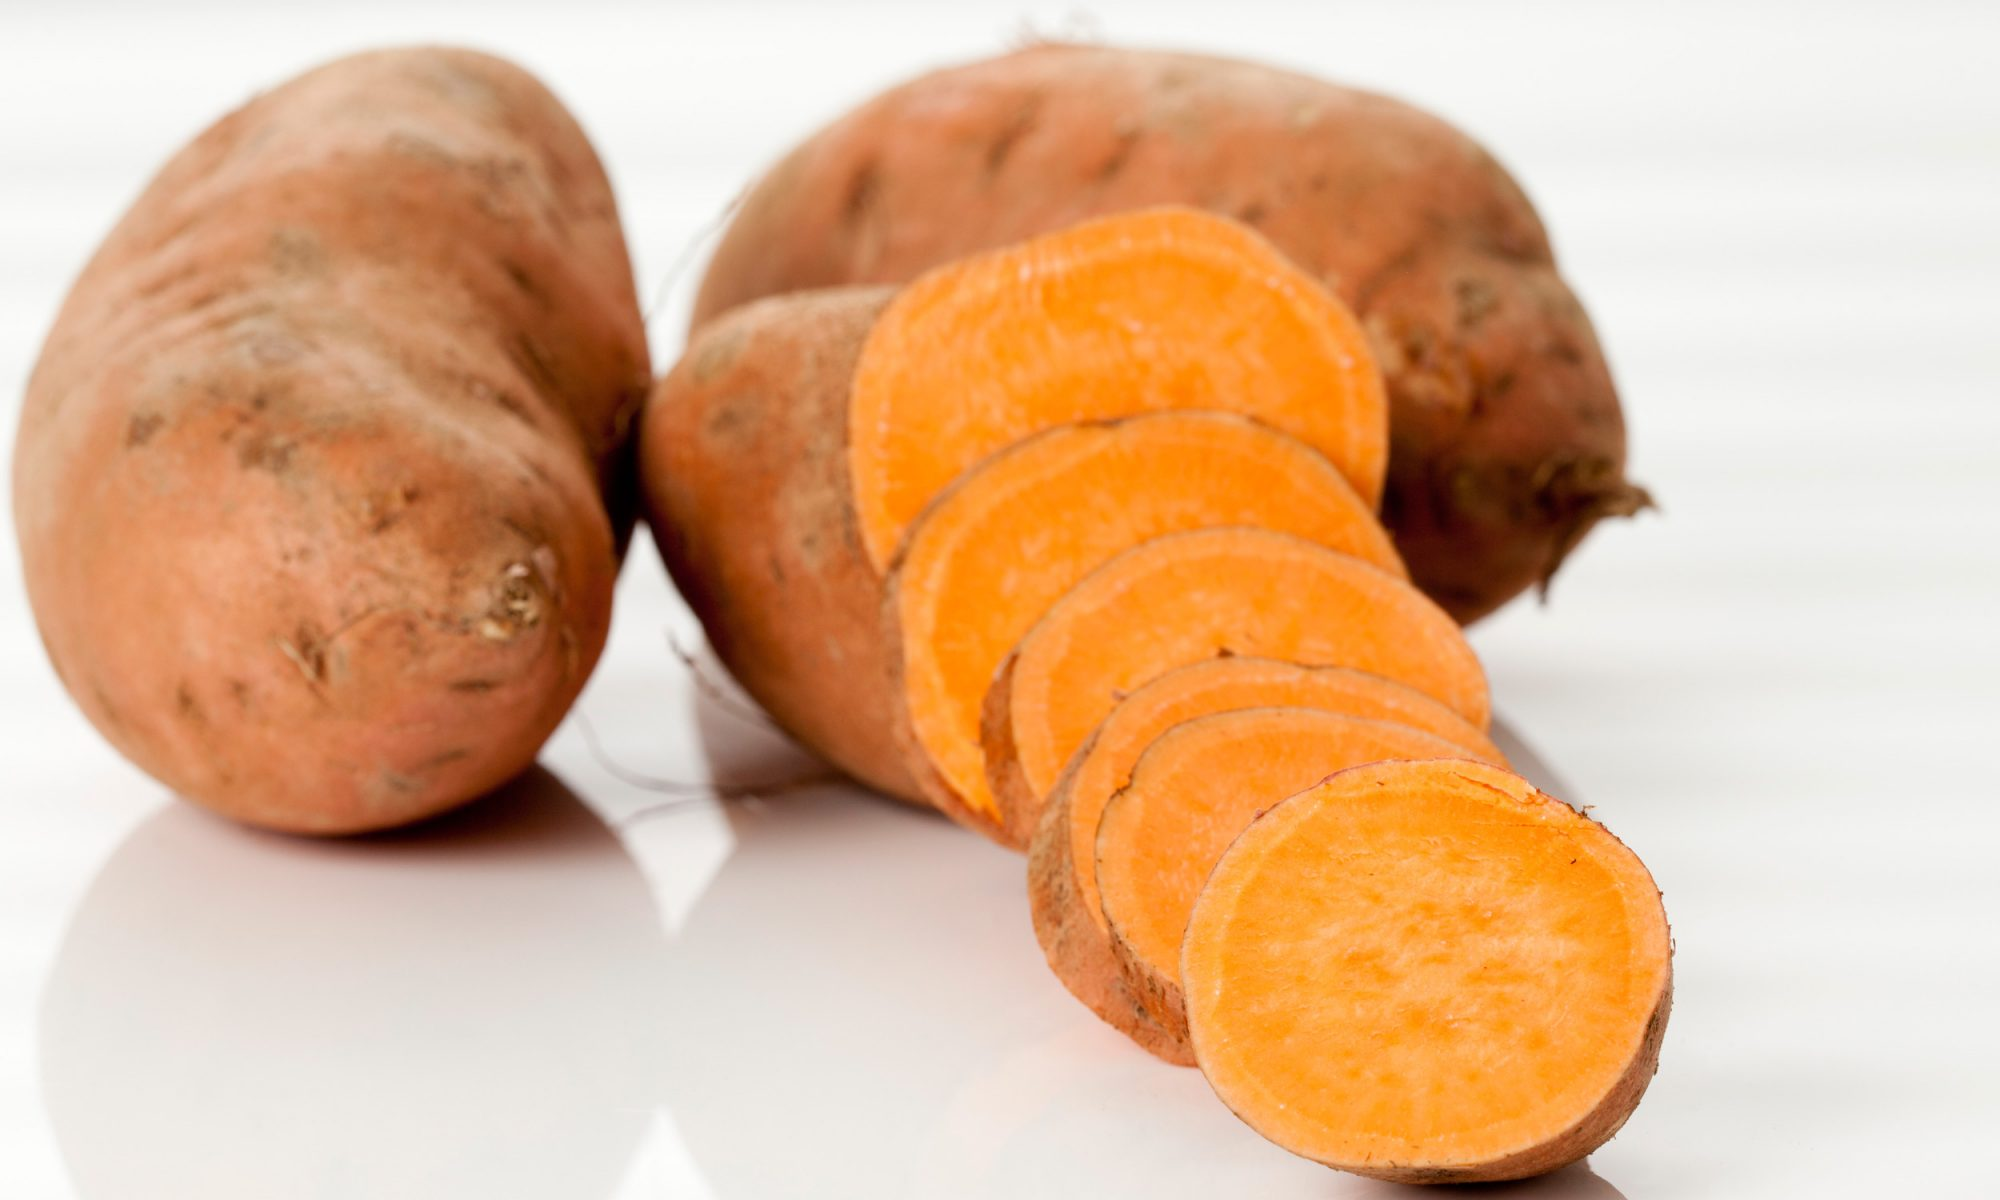 EC: The Difference Between Sweet and Regular Potatoes Boils Down to Science